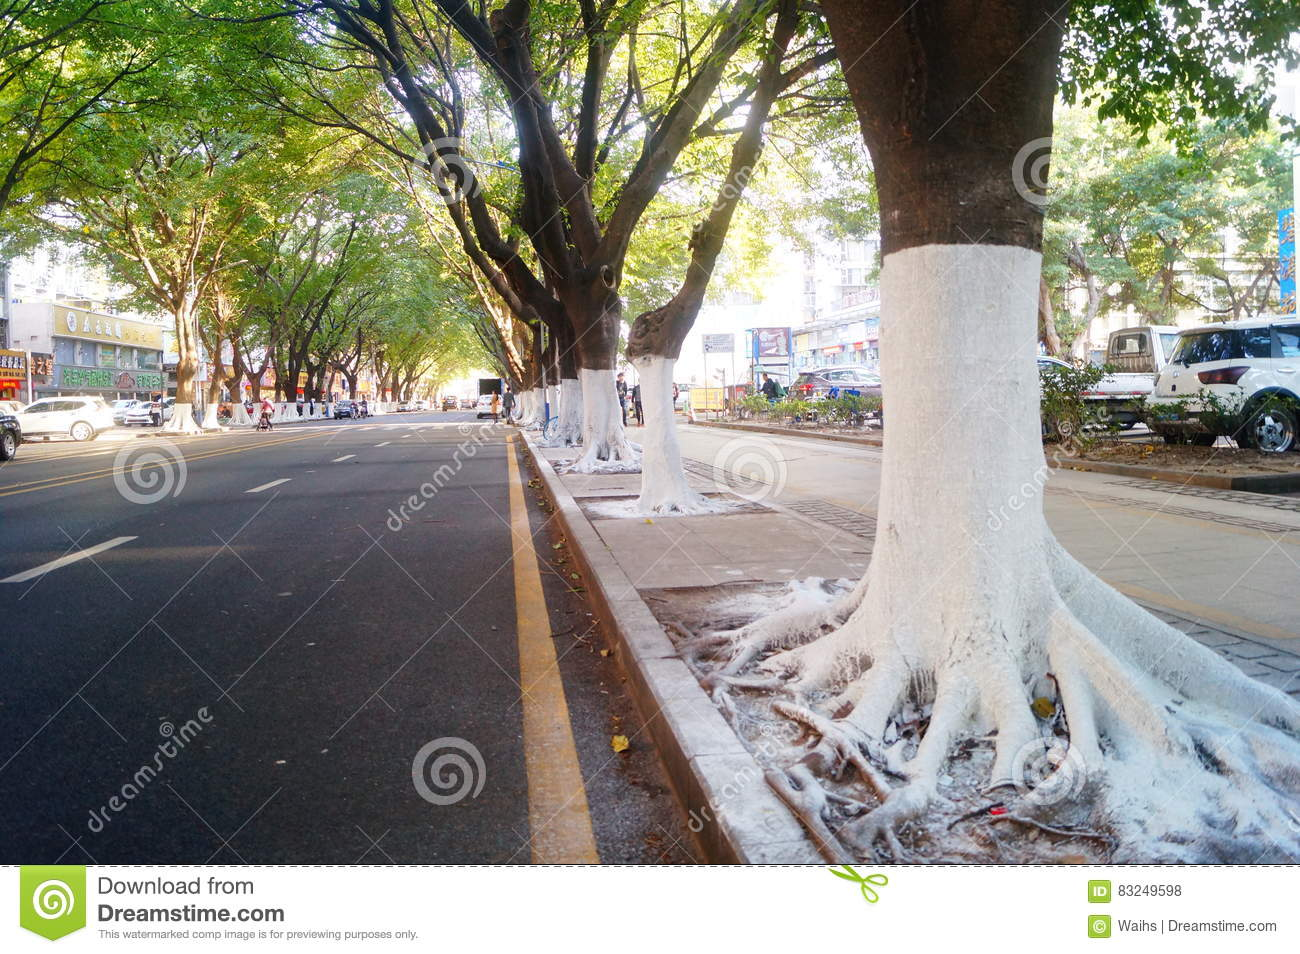 Sidewalk tree roots were painted white lime, safe over winter